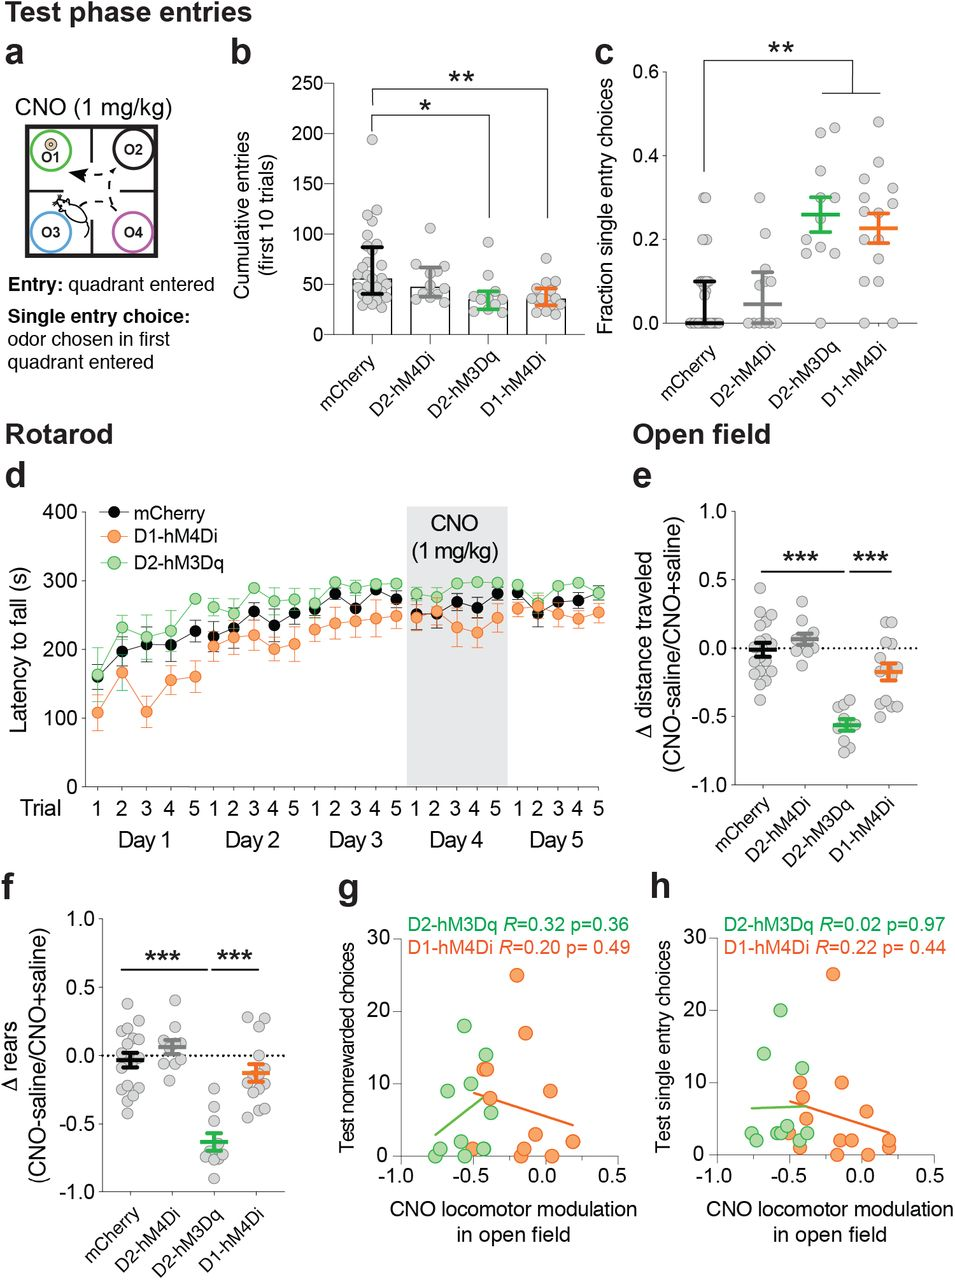 Chemogenetic manipulation of DMS direct and indirect pathway neurons reduced entries and increased single trial choices. Outside of the task context, chemogenetic manipulation spared rotarod performance but did affect open field locomotion in a manner uncorrelated with task choice effects. ( a ) Test Phase quadrant entries. ( b ) D2-Cre mice expressing activating DREADD (D2-hM3Dq) or D1-Cre mice expressing inhibitory DREADD (D1-hM4Di) made fewer entries during Test Phase on CNO compared to mCherry control mice on CNO (*p